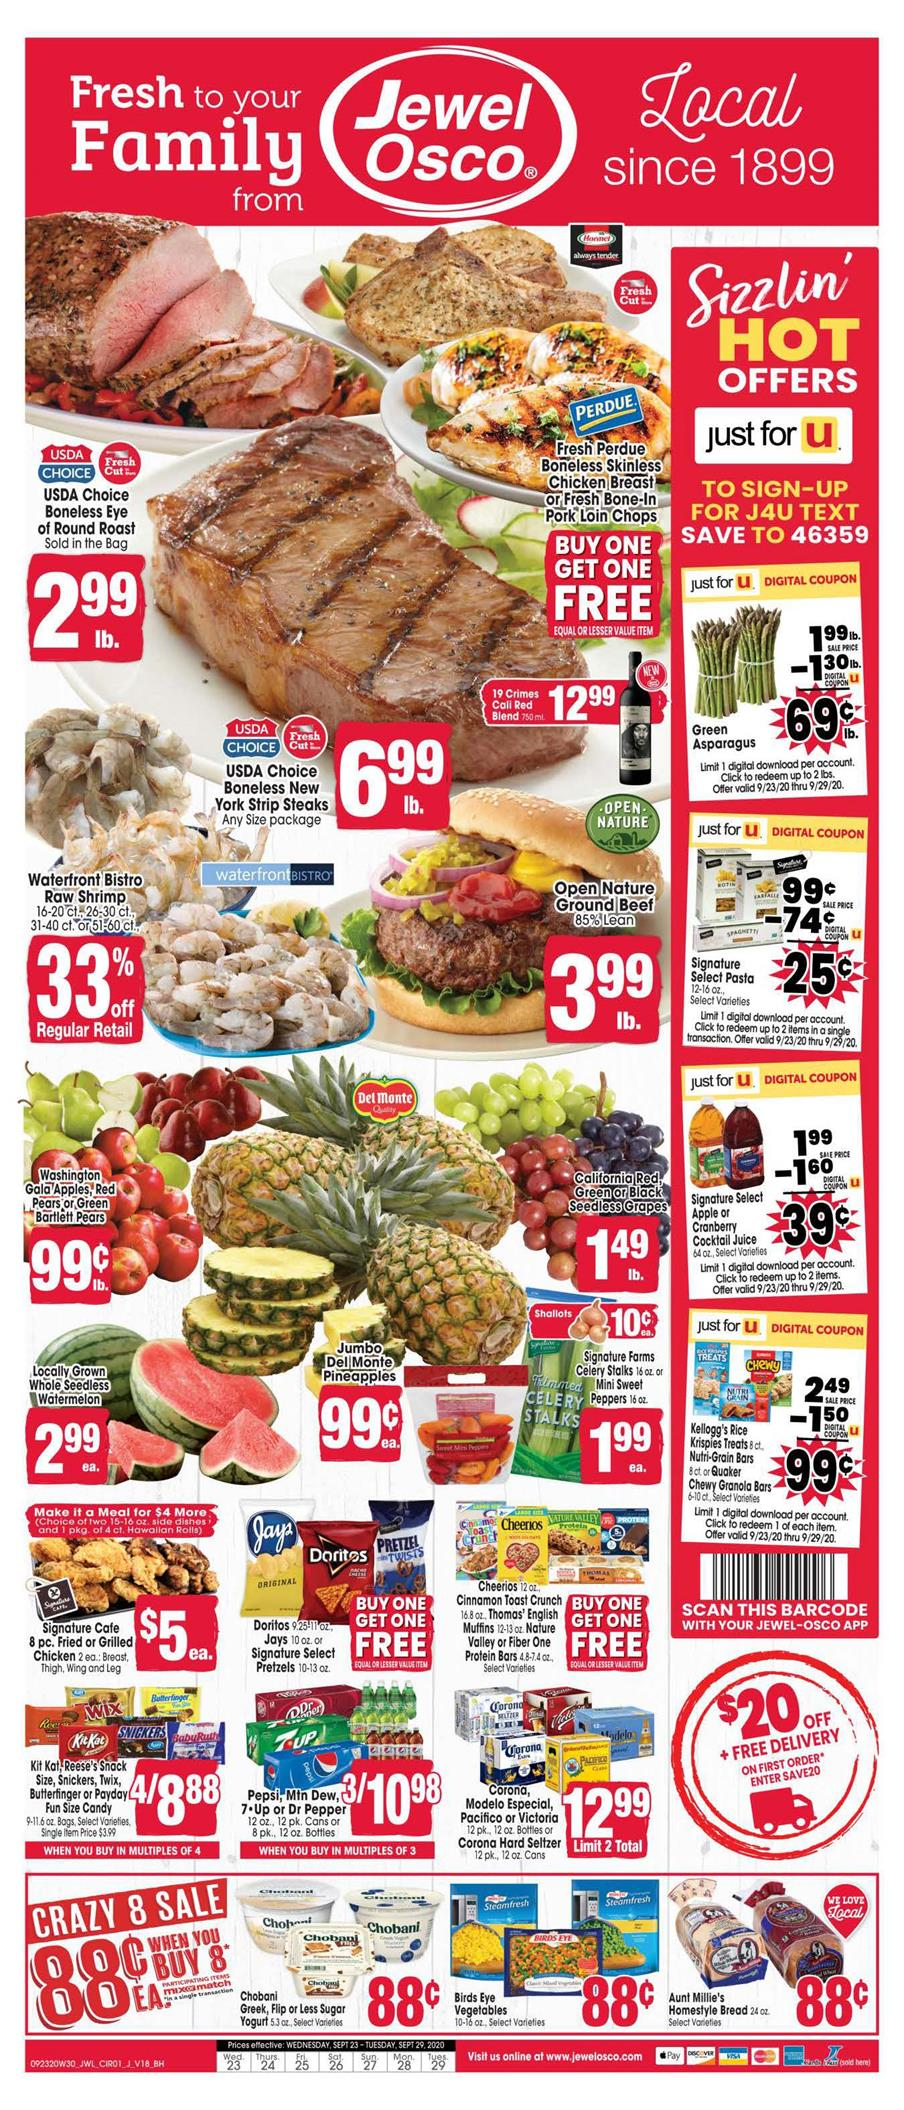 jewel osco ad sep 23 2020